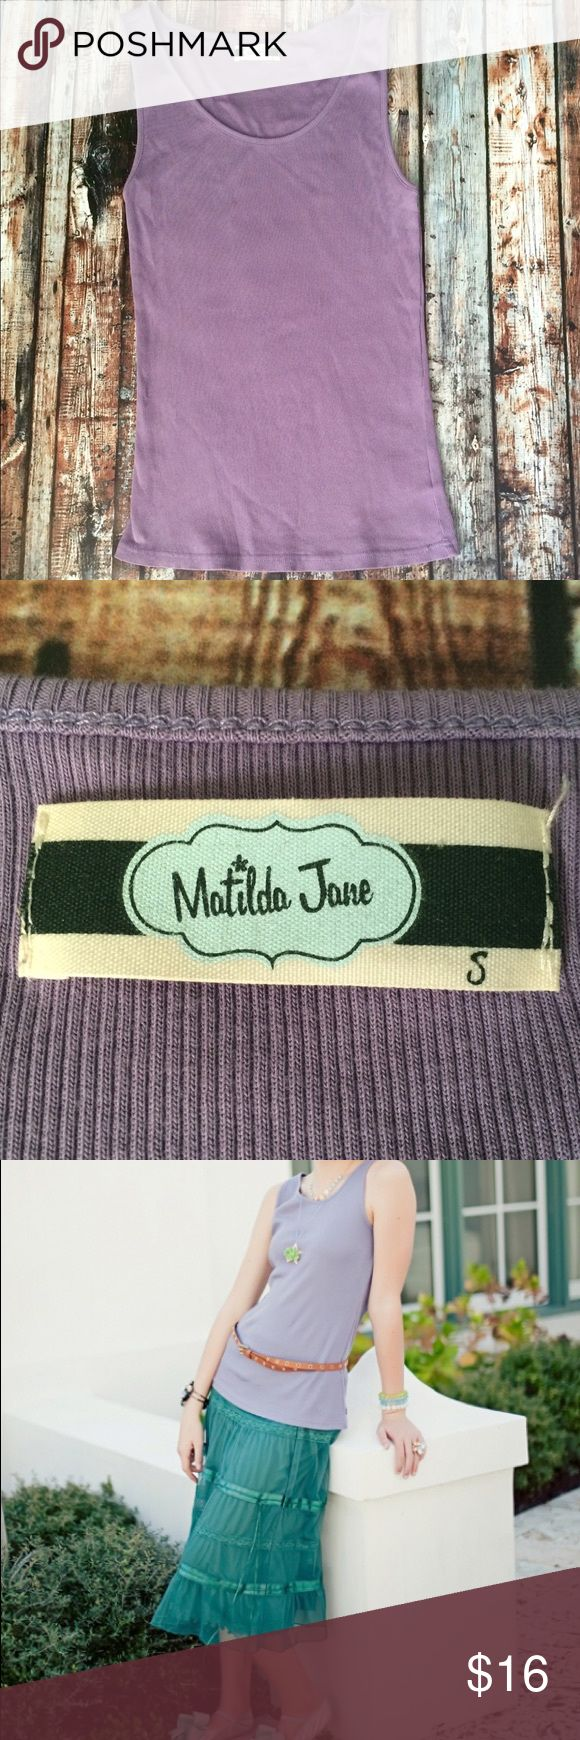 Matilda Jane House of Cloud Lavender Dusk Tank Top Matilda Jane lavender ribbed Dusk Tank from the House of Clouds Collection. Matches the Josie Skirt. Tag size small. Runs a bit large imo. Good condition. Matilda Jane Tops Tank Tops